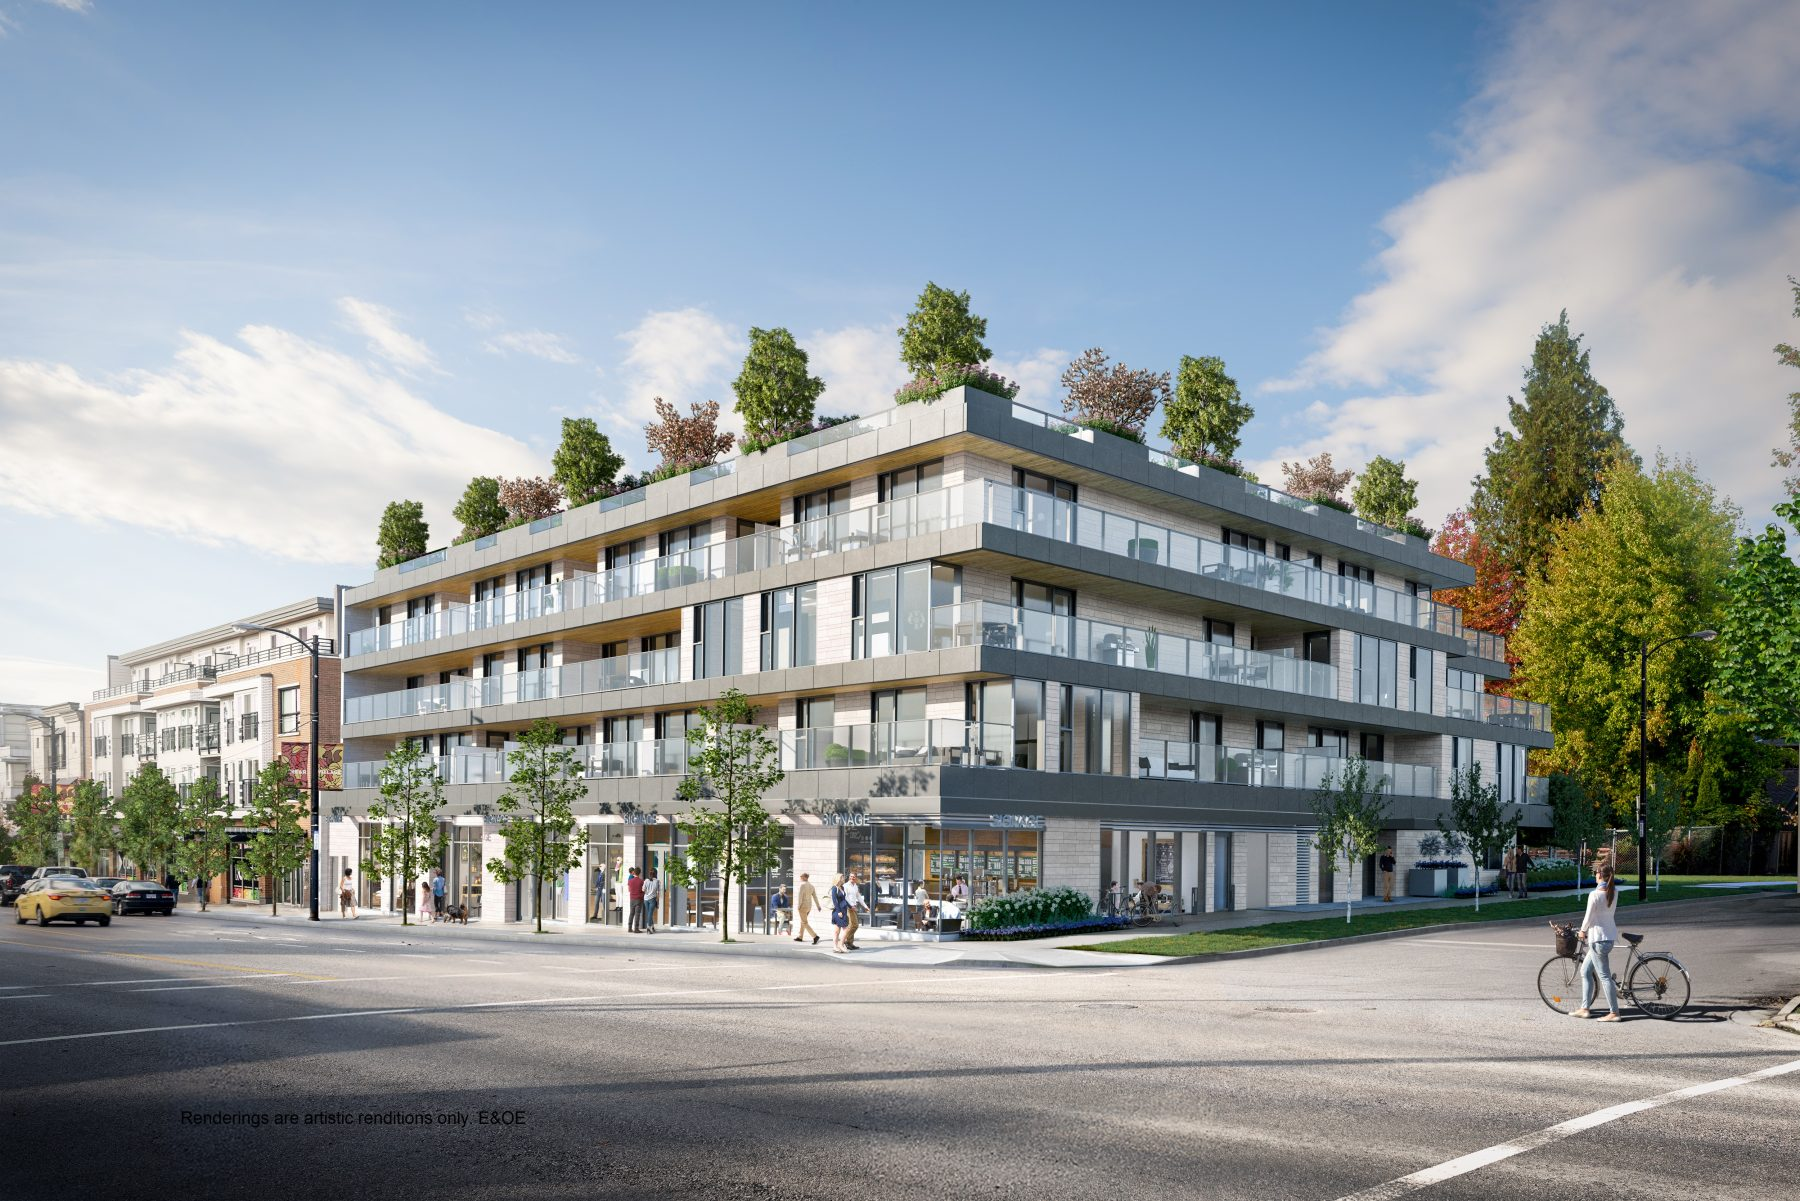 Twenty-nine Beautifully-designed 1-, 2- And 3-bedroom Presale Condominiums Coming Soon To Dunbar & 39th Avenue.